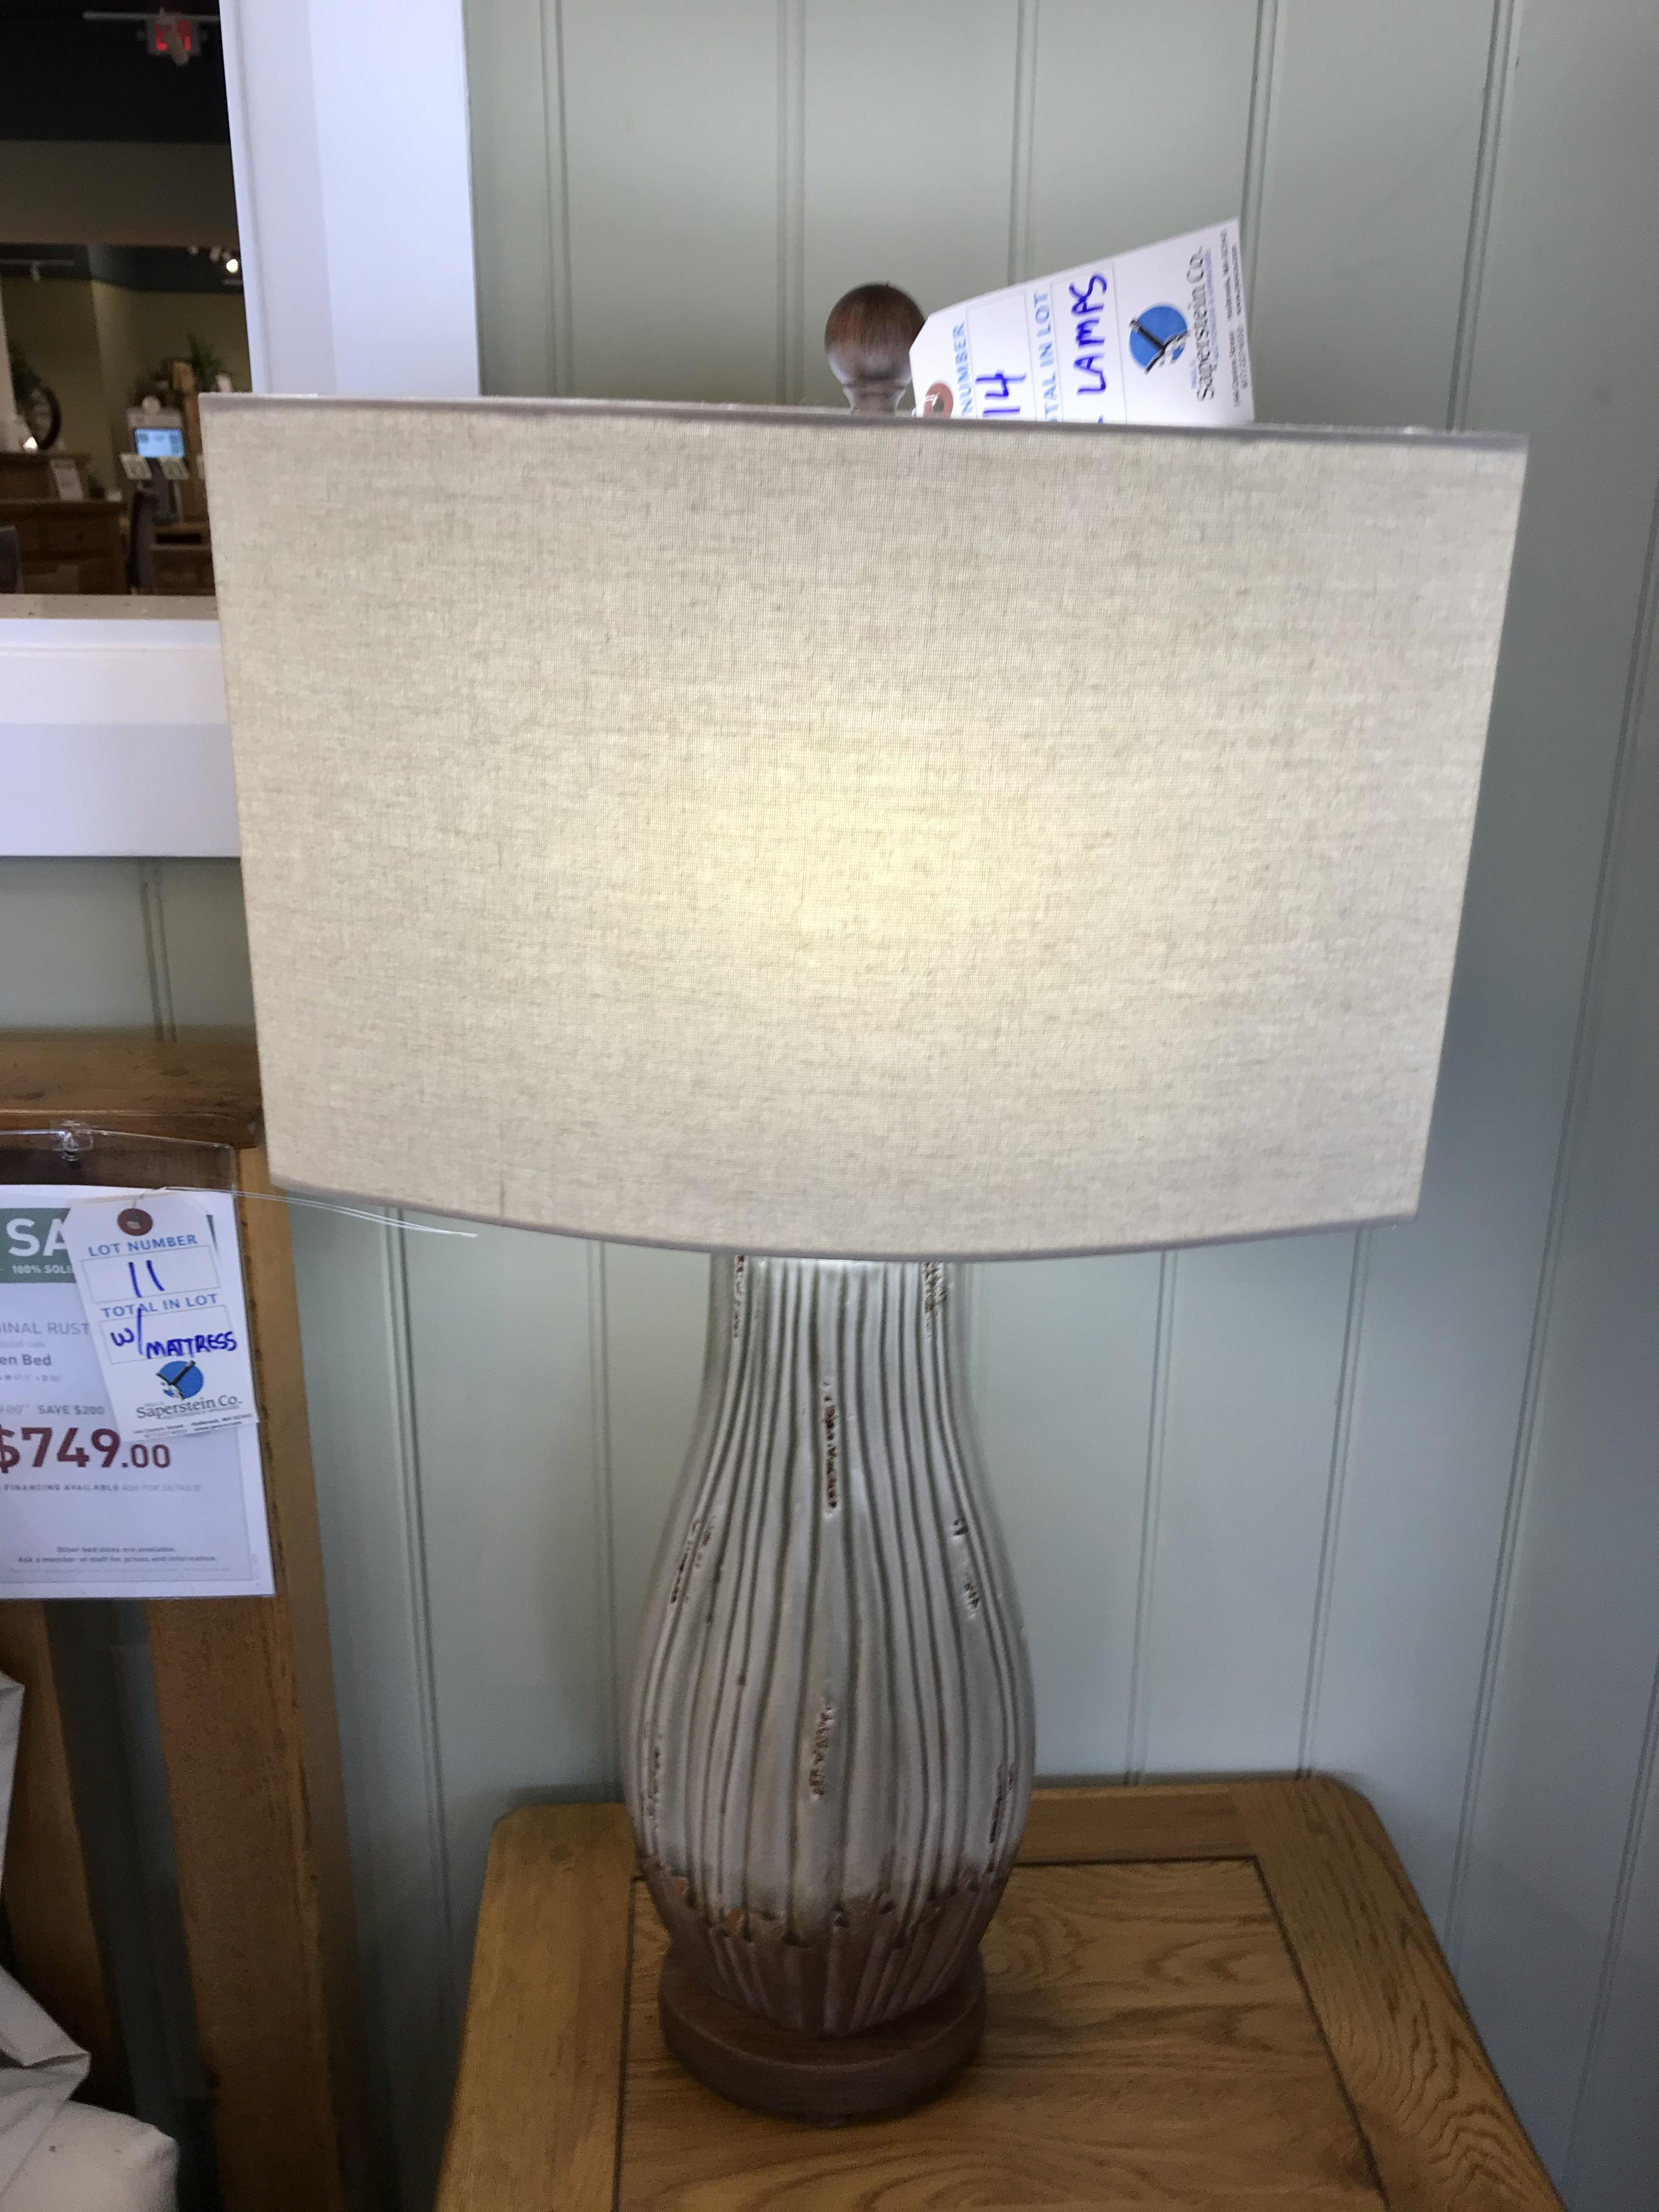 (2) Table Lamps See Picture For Dimensions and Product Info